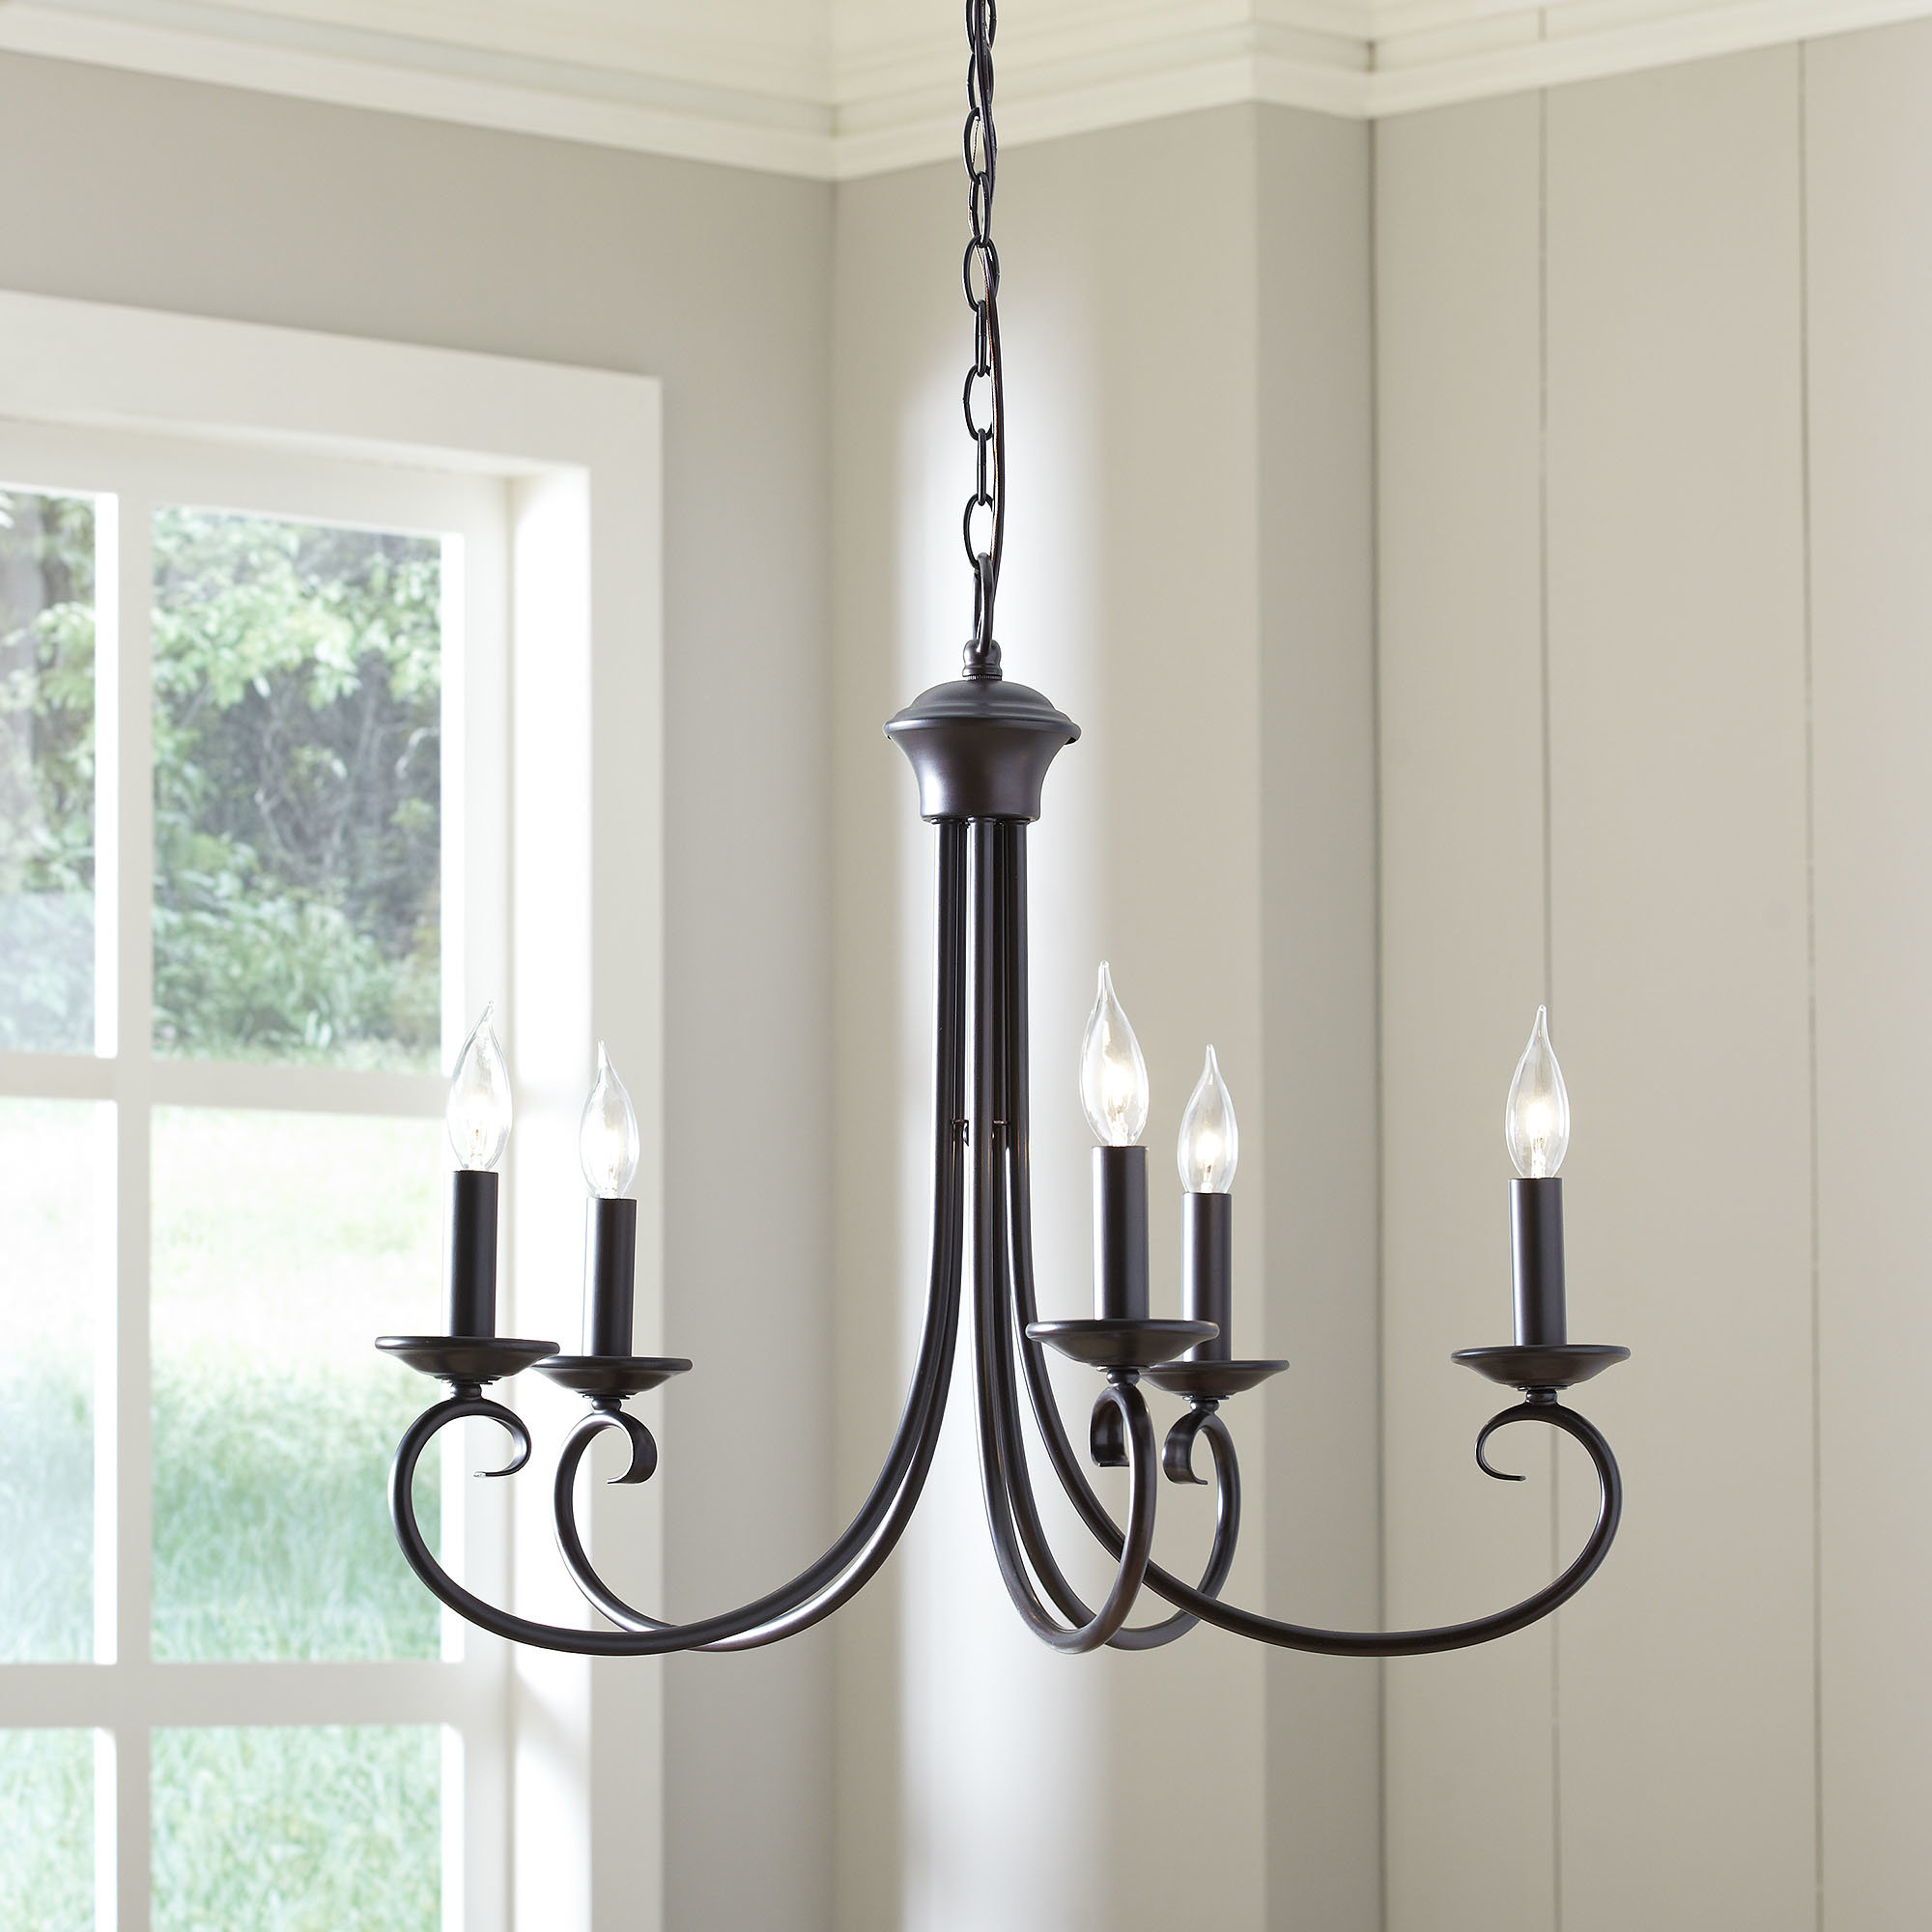 Edgell 5 Light Candle Style Chandelier With Shaylee 6 Light Candle Style Chandeliers (Gallery 17 of 30)